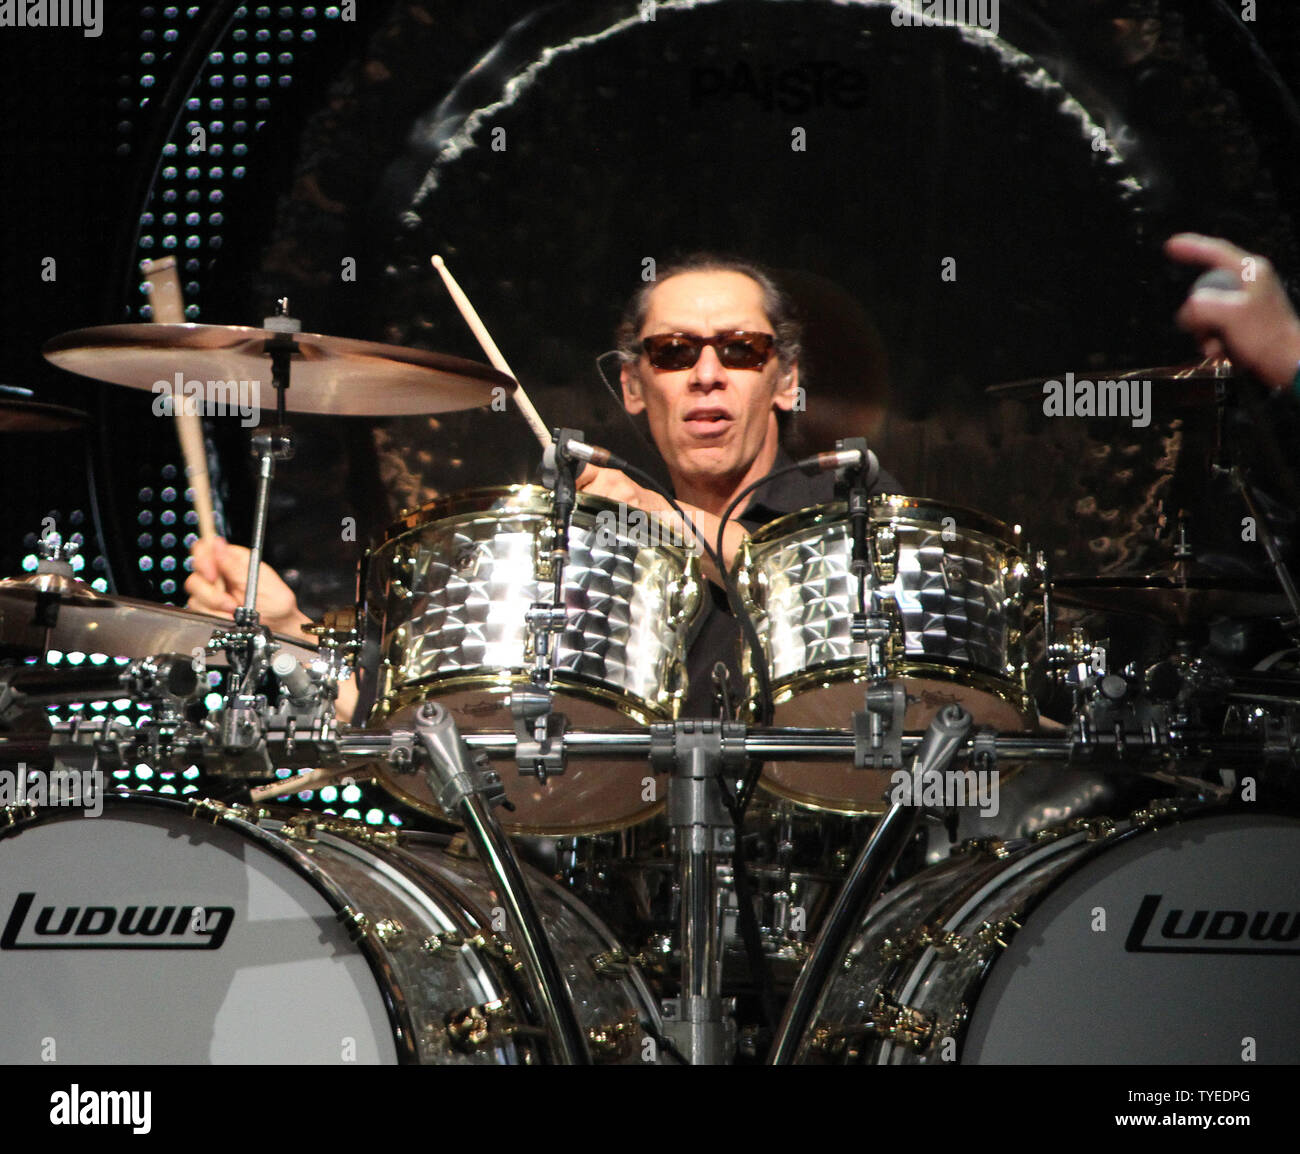 Alex Van Halen With Van Halen Performs In Concert At The Bankatlantic Center In Sunrise Florida On April 10 2012 Upi Michael Bush Stock Photo Alamy